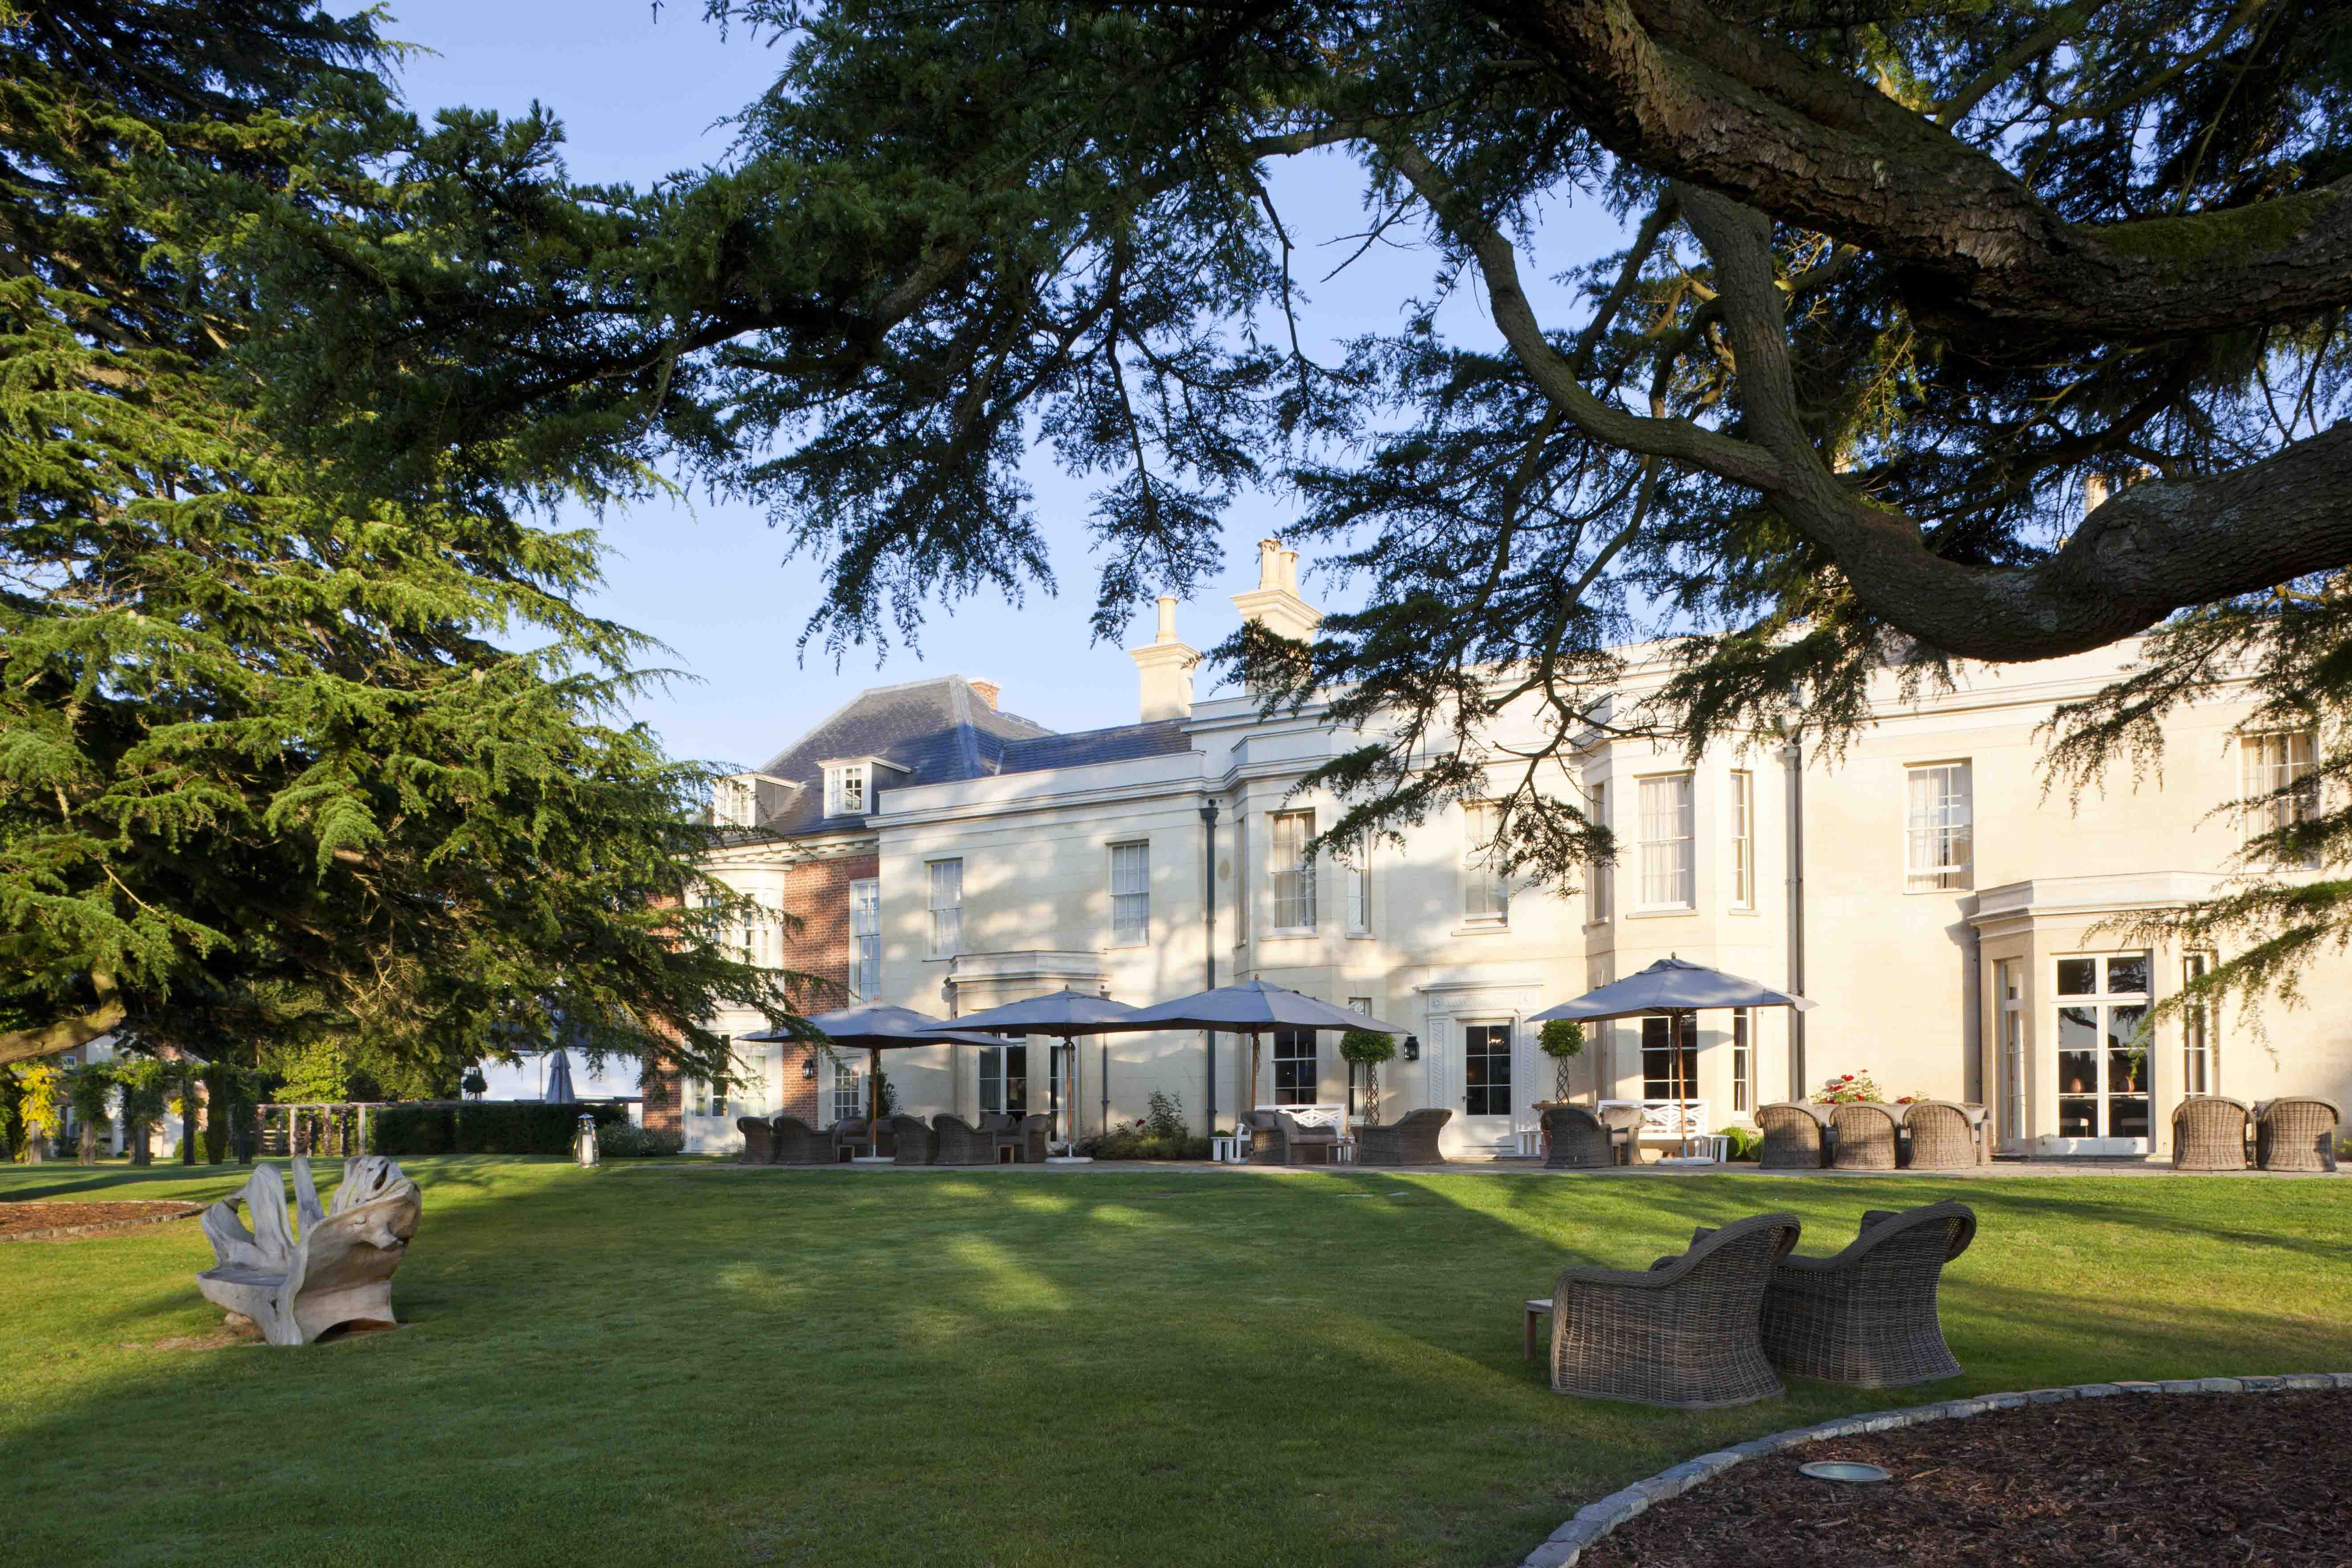 Limewood New Forest Luxury Country House Hotel England 5 Star Hampshire